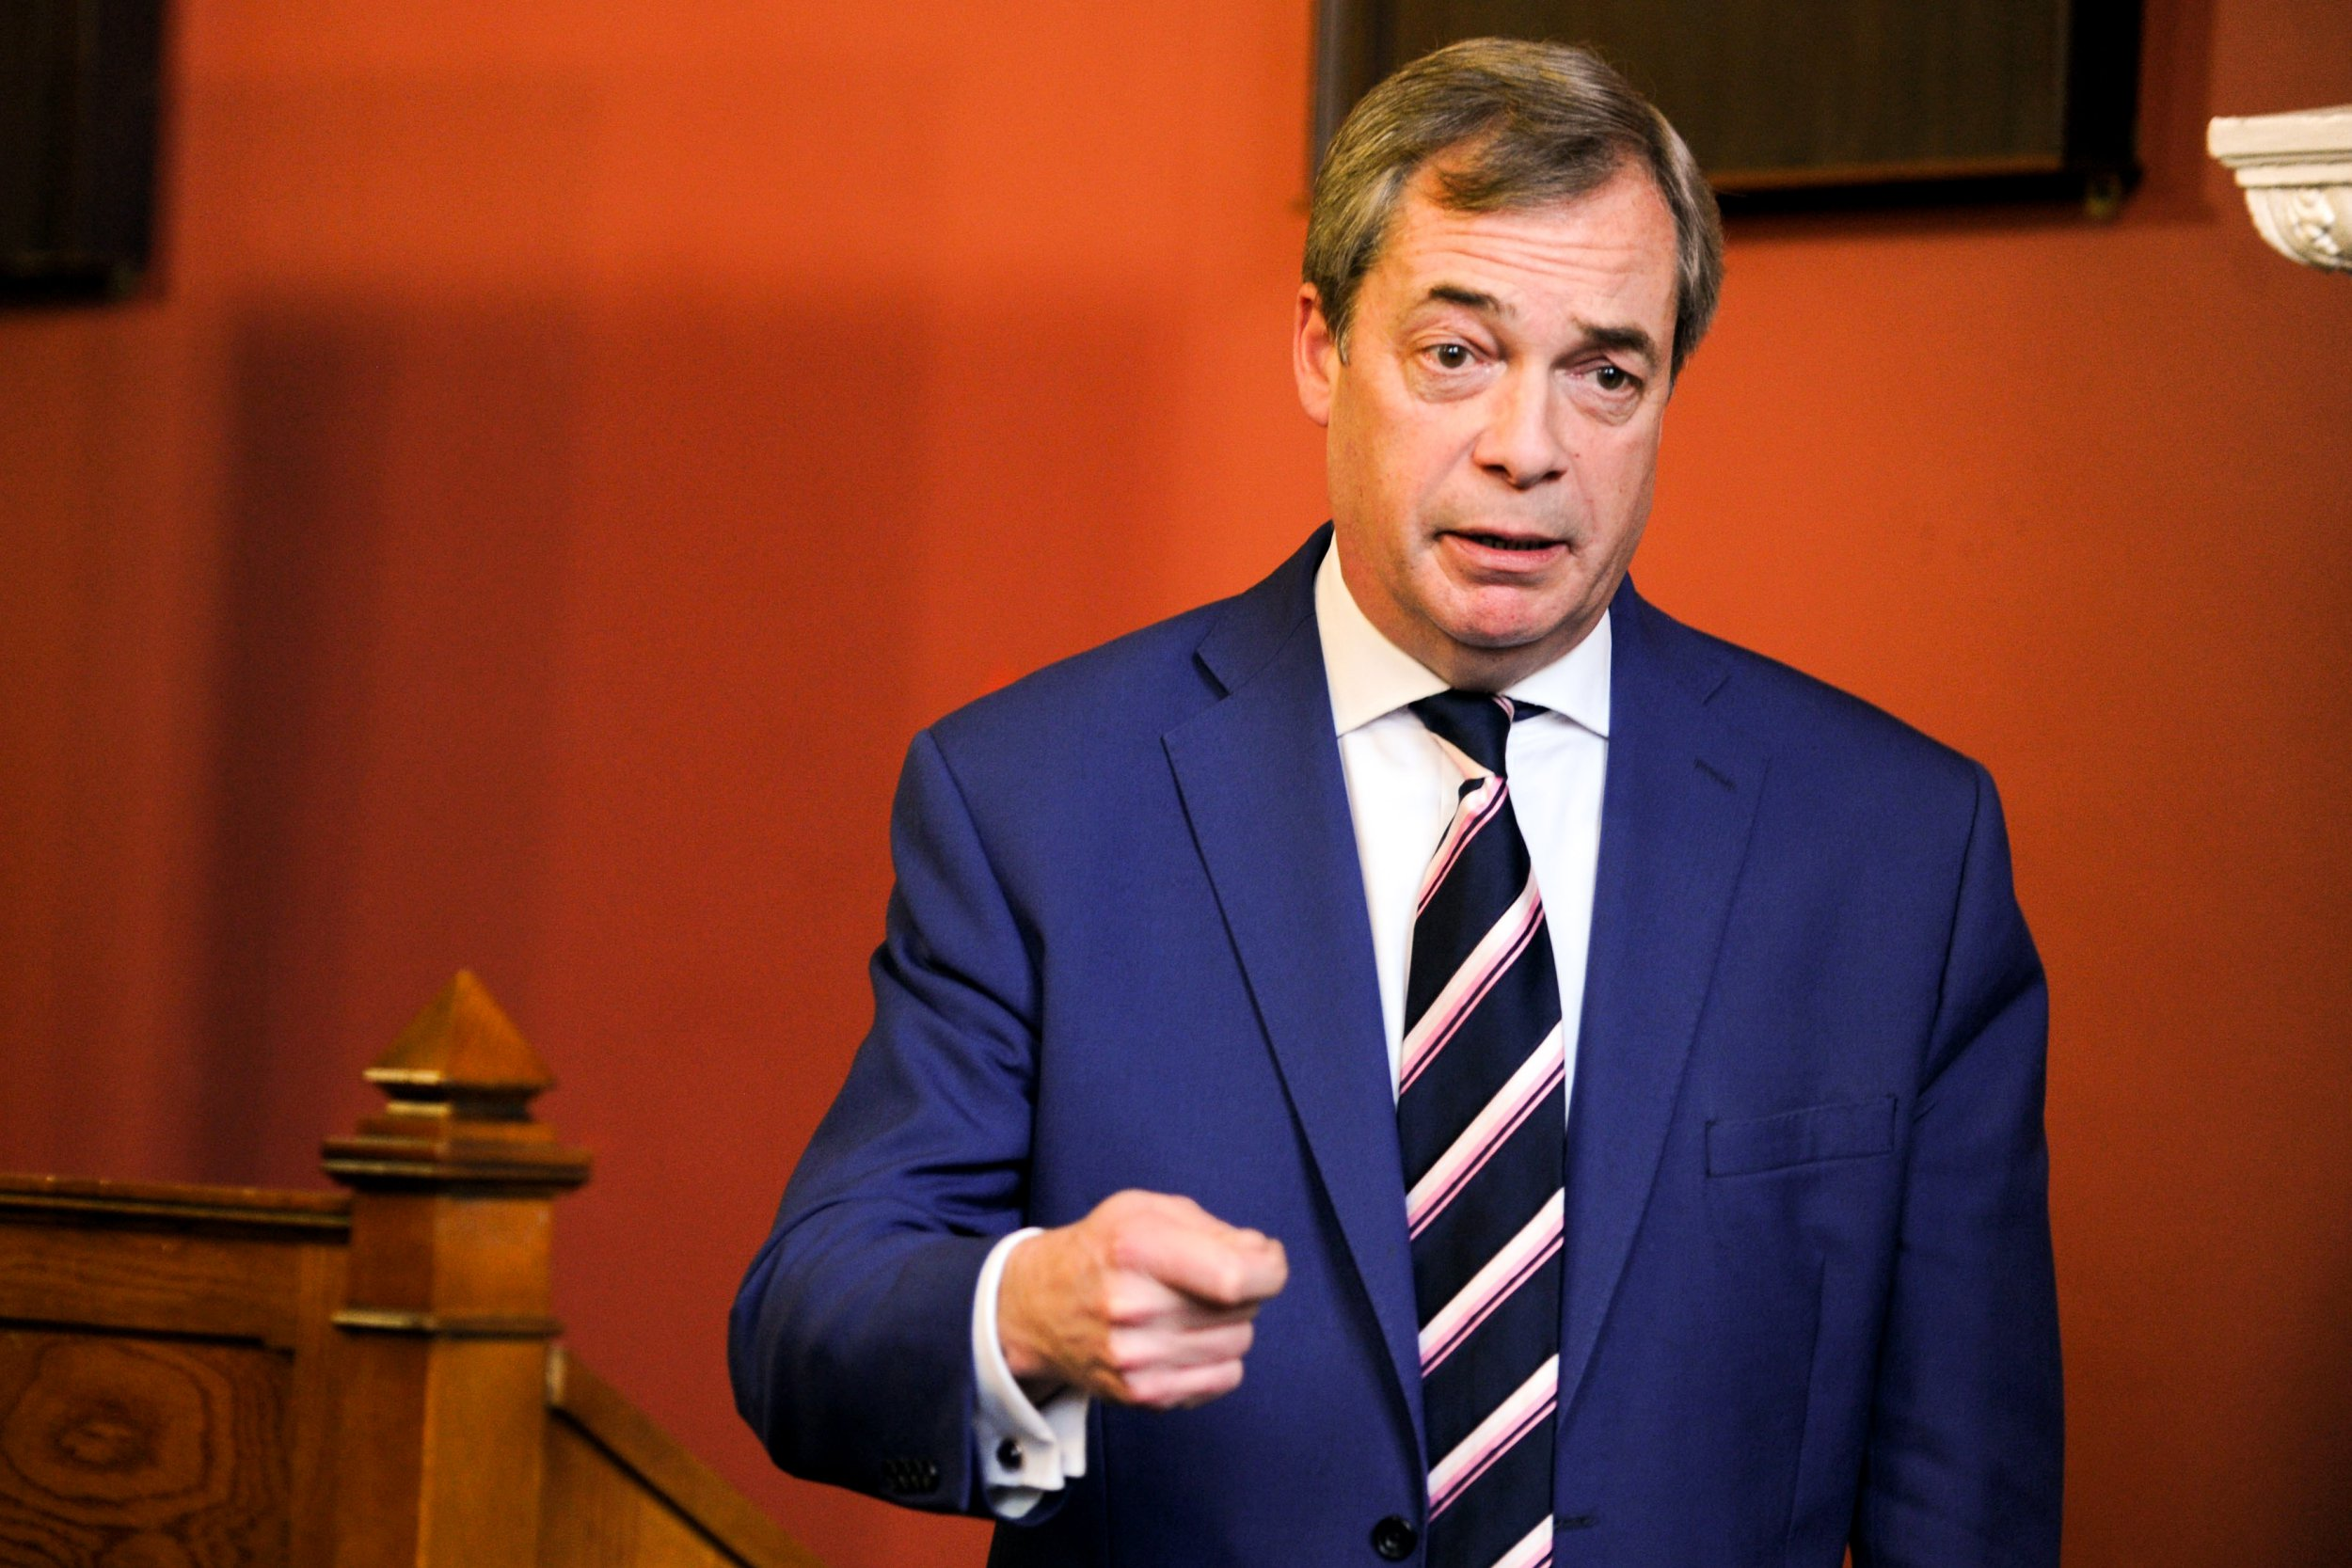 Nigel Farage, former leader of the U.K. Independence Party (UKIP), gestures as he speaks at Trinity College Dublin??in Dublin, Ireland, on Friday, Feb. 2, 2018. Farage is in Dublin to advocate Ireland following the U.K. out of the European Union. Photographer: Aidan Crawley/Bloomberg via Getty Images